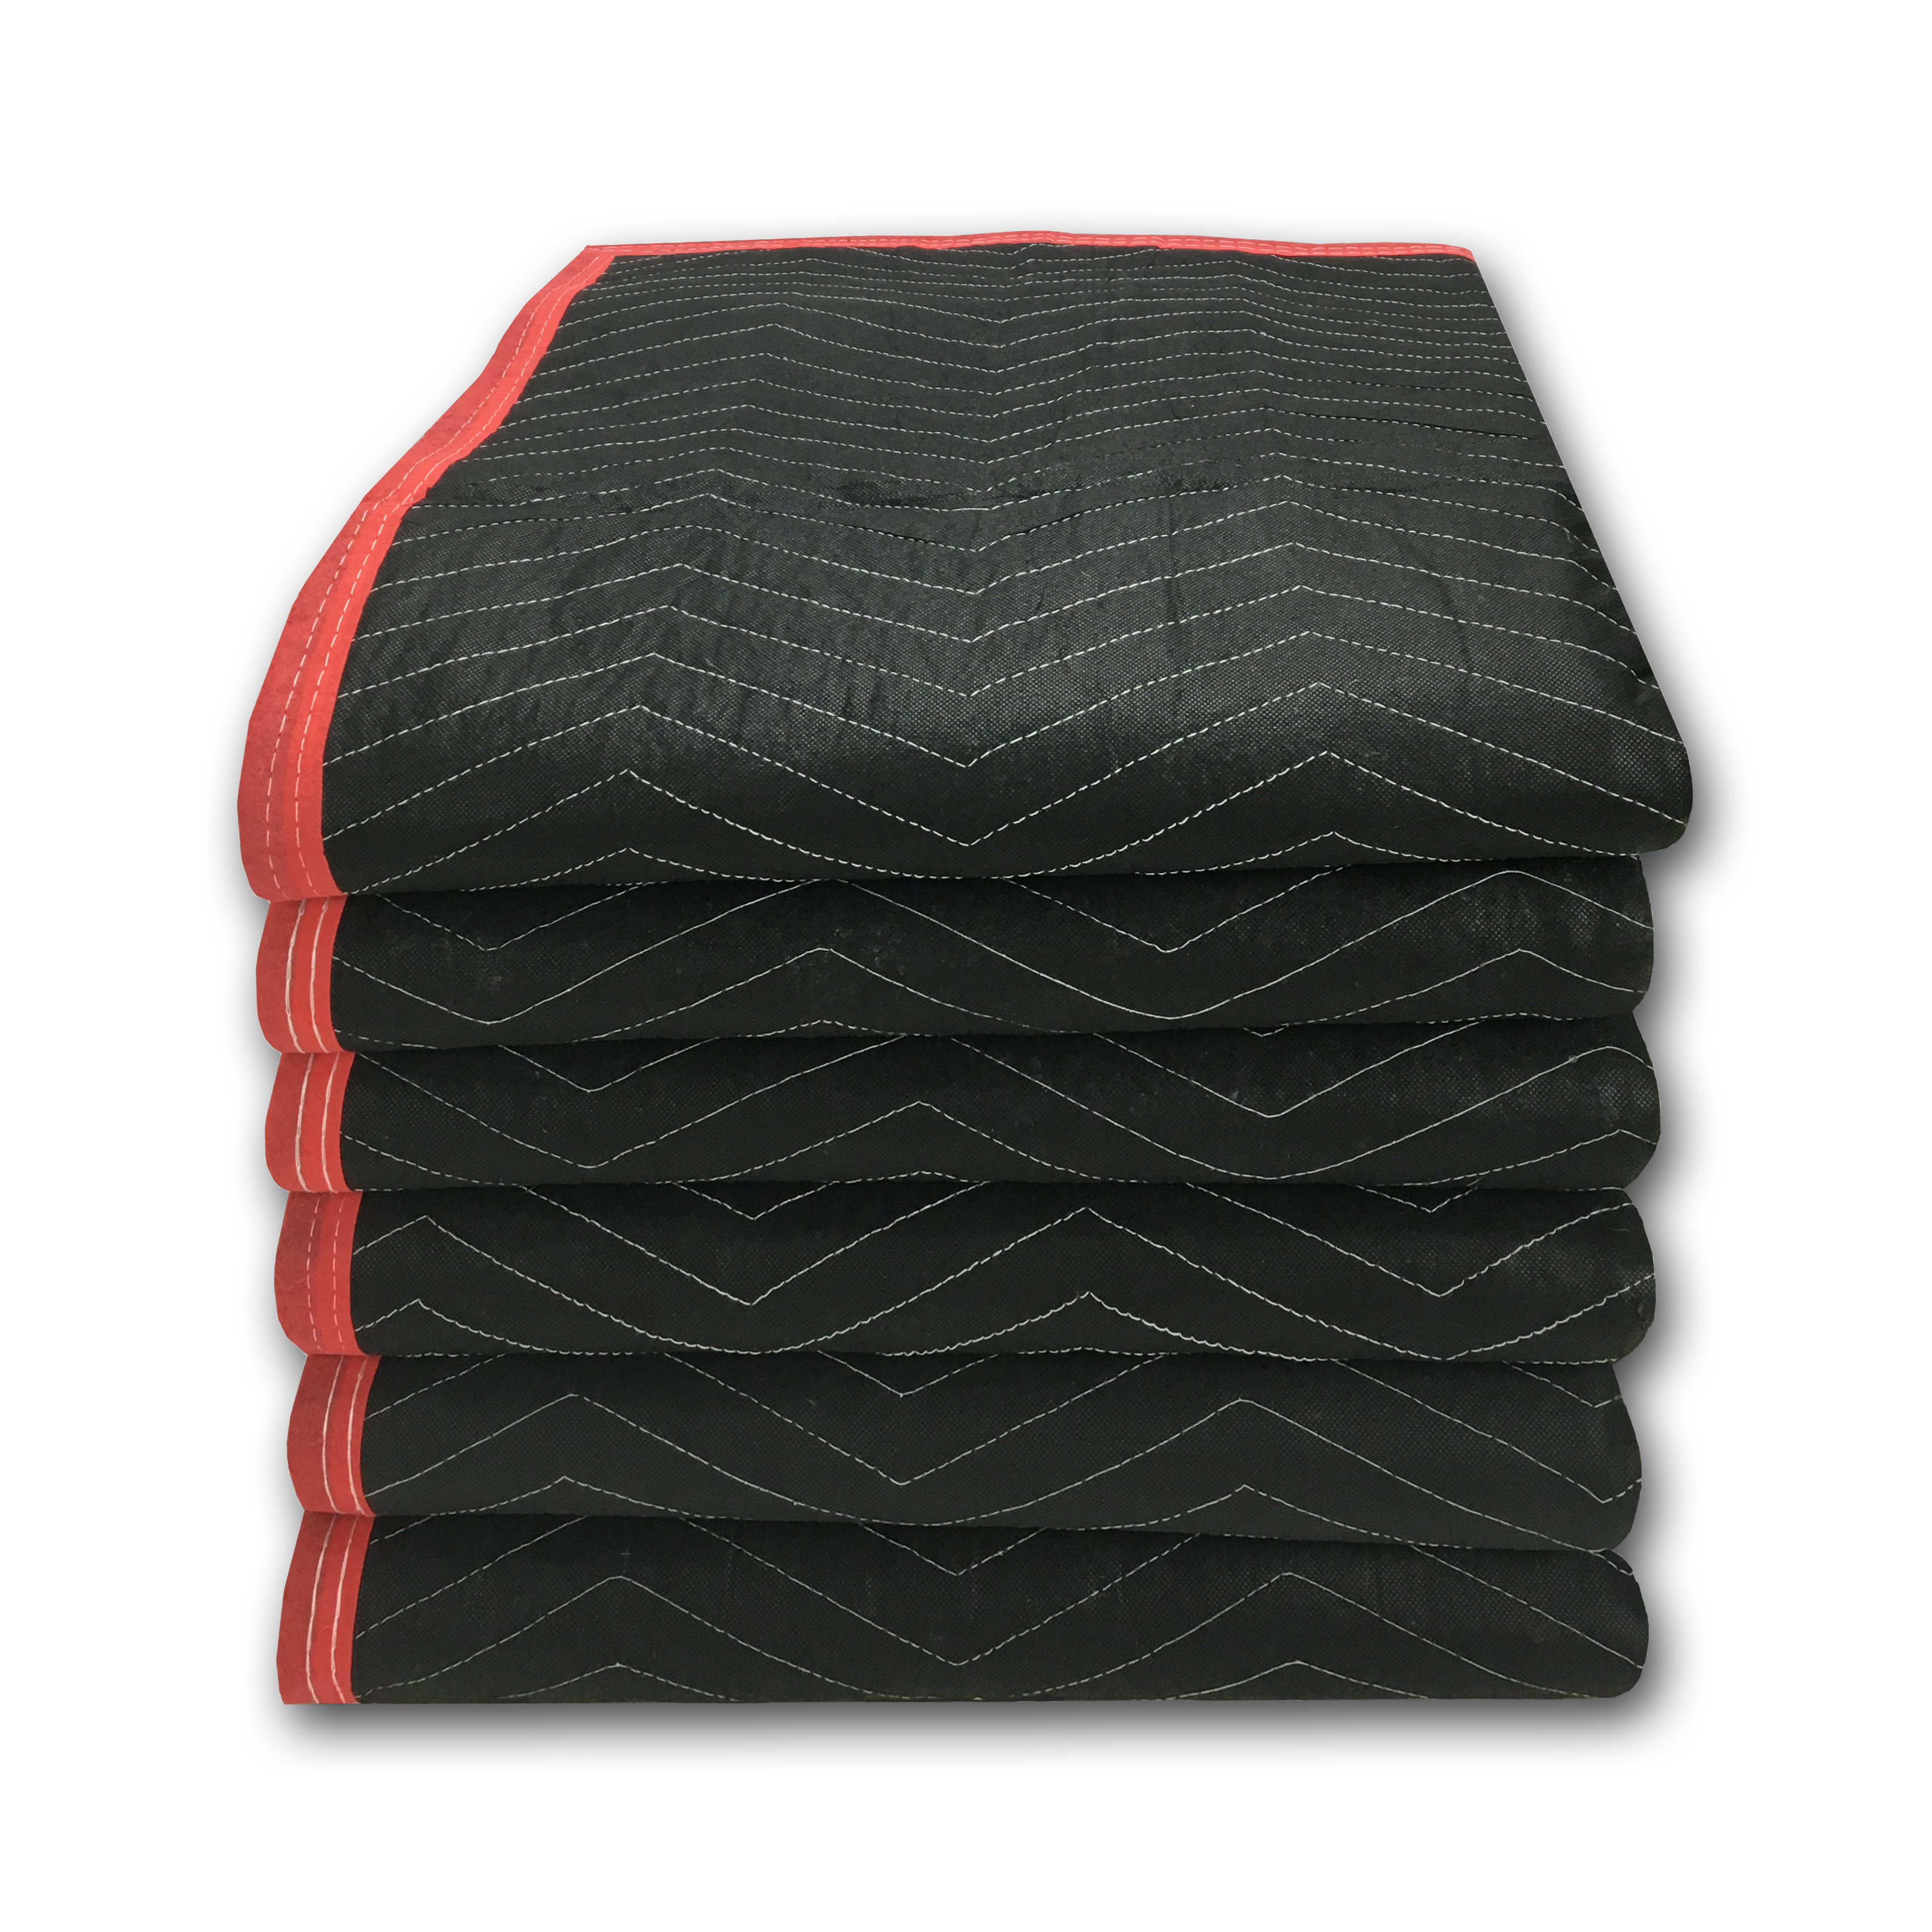 Uboxes Deluxe Moving Blankets, 72 x 80 in, 5.42lbs each, 6 Pack